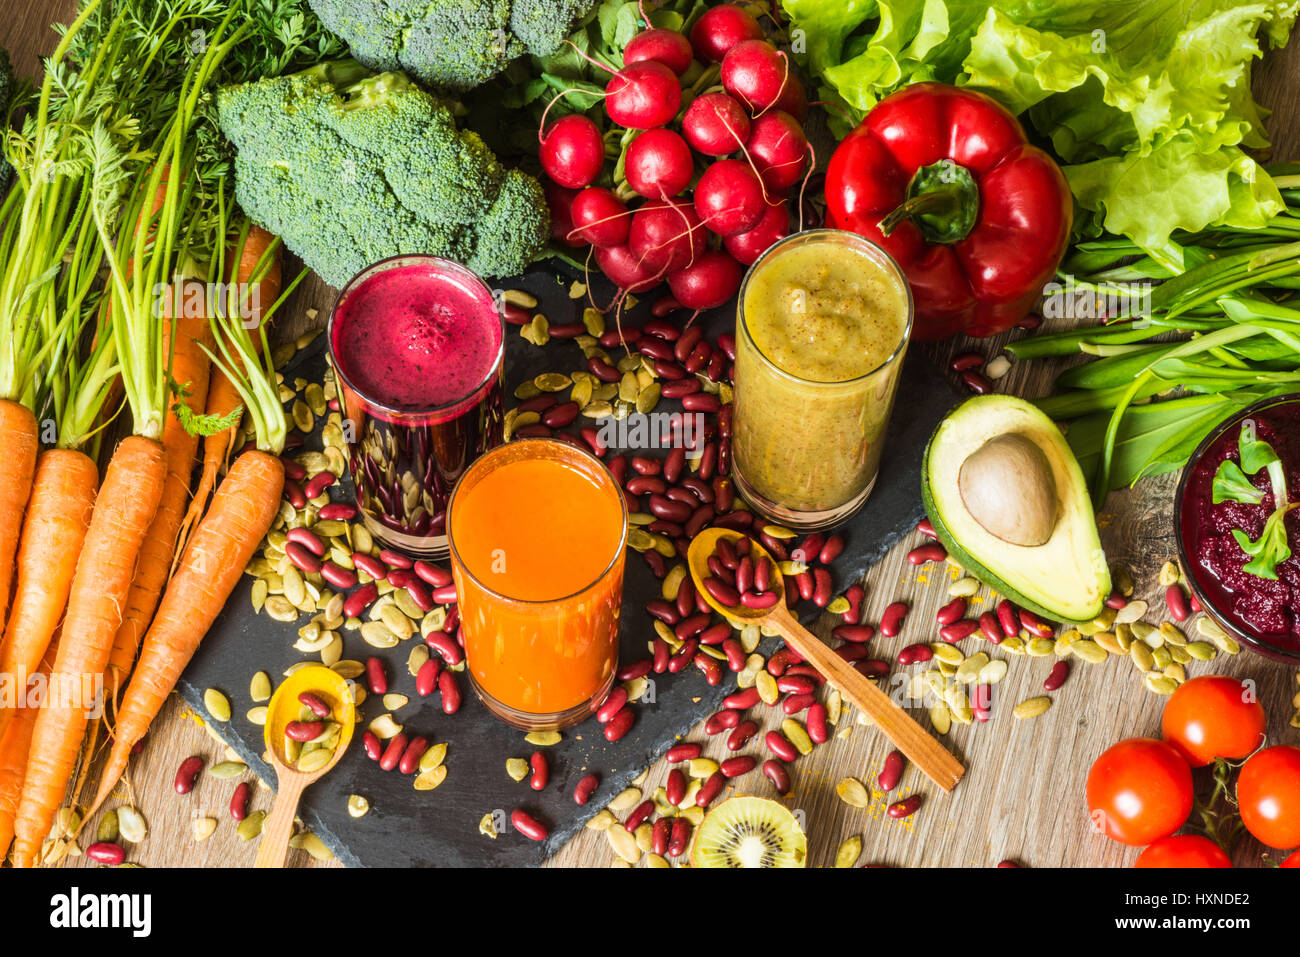 Healthy vegan food. Fresh vegetables on wooden background. Detox diet. Different colorful fresh juices - Stock Image